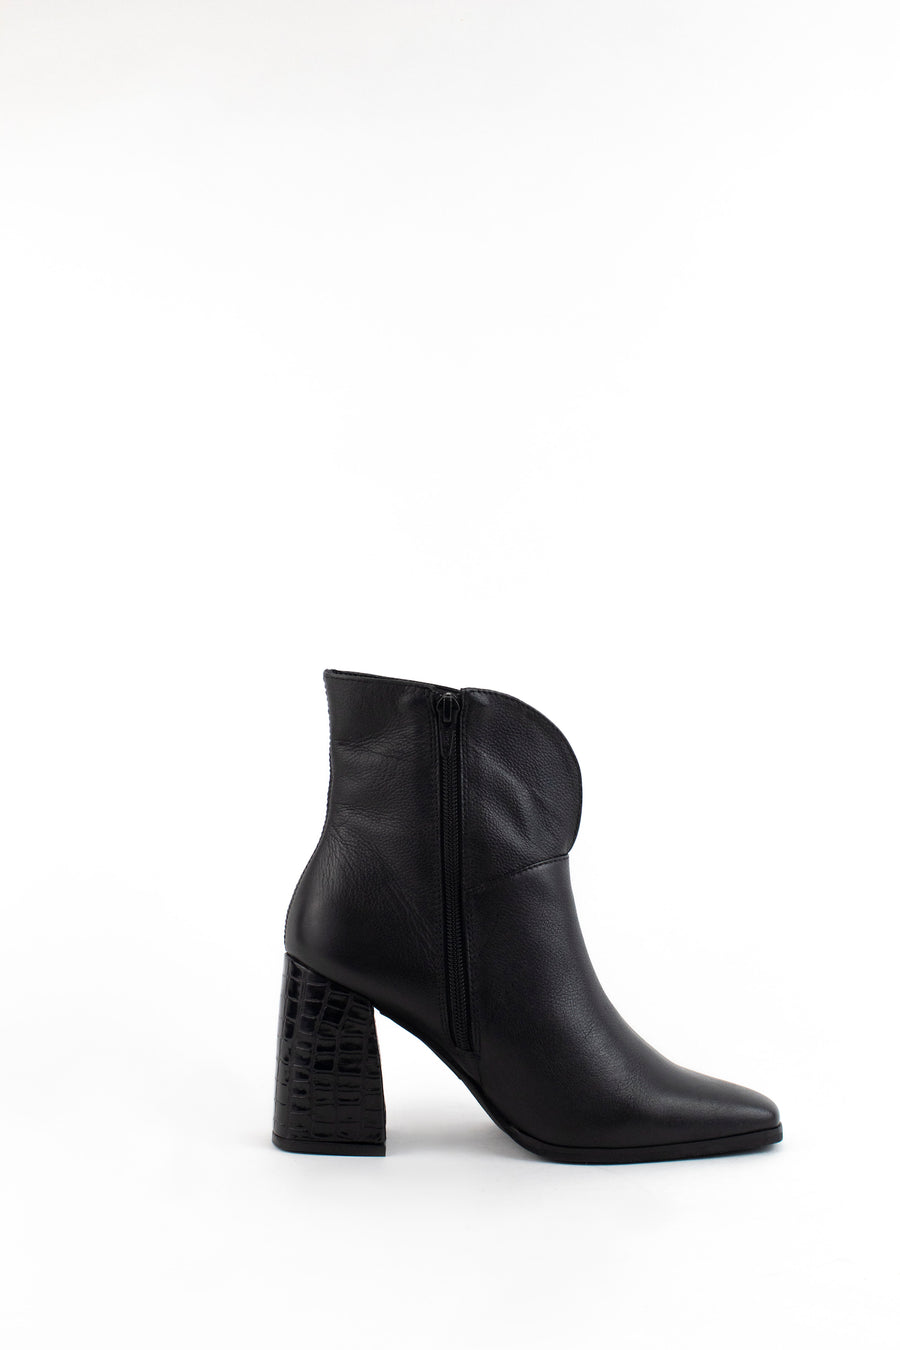 Verona ankle boots in black leather